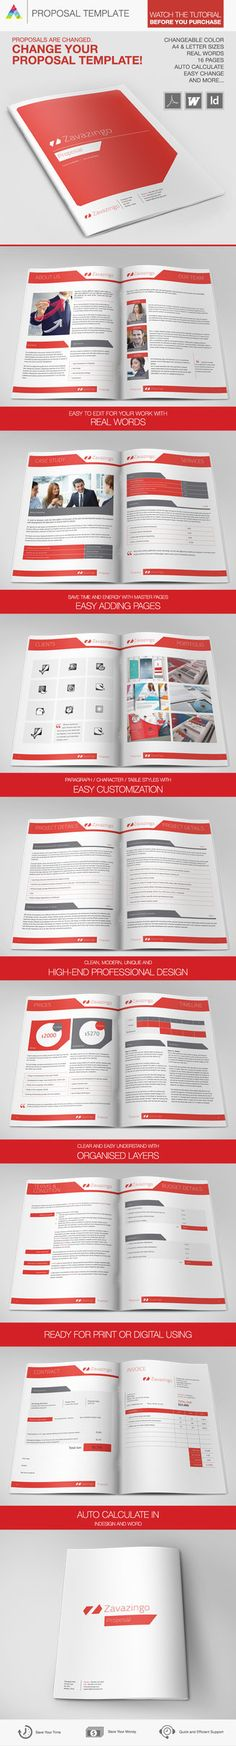 RFP Covers (Request for Proposal) on Behance Cover Designs - rfp template